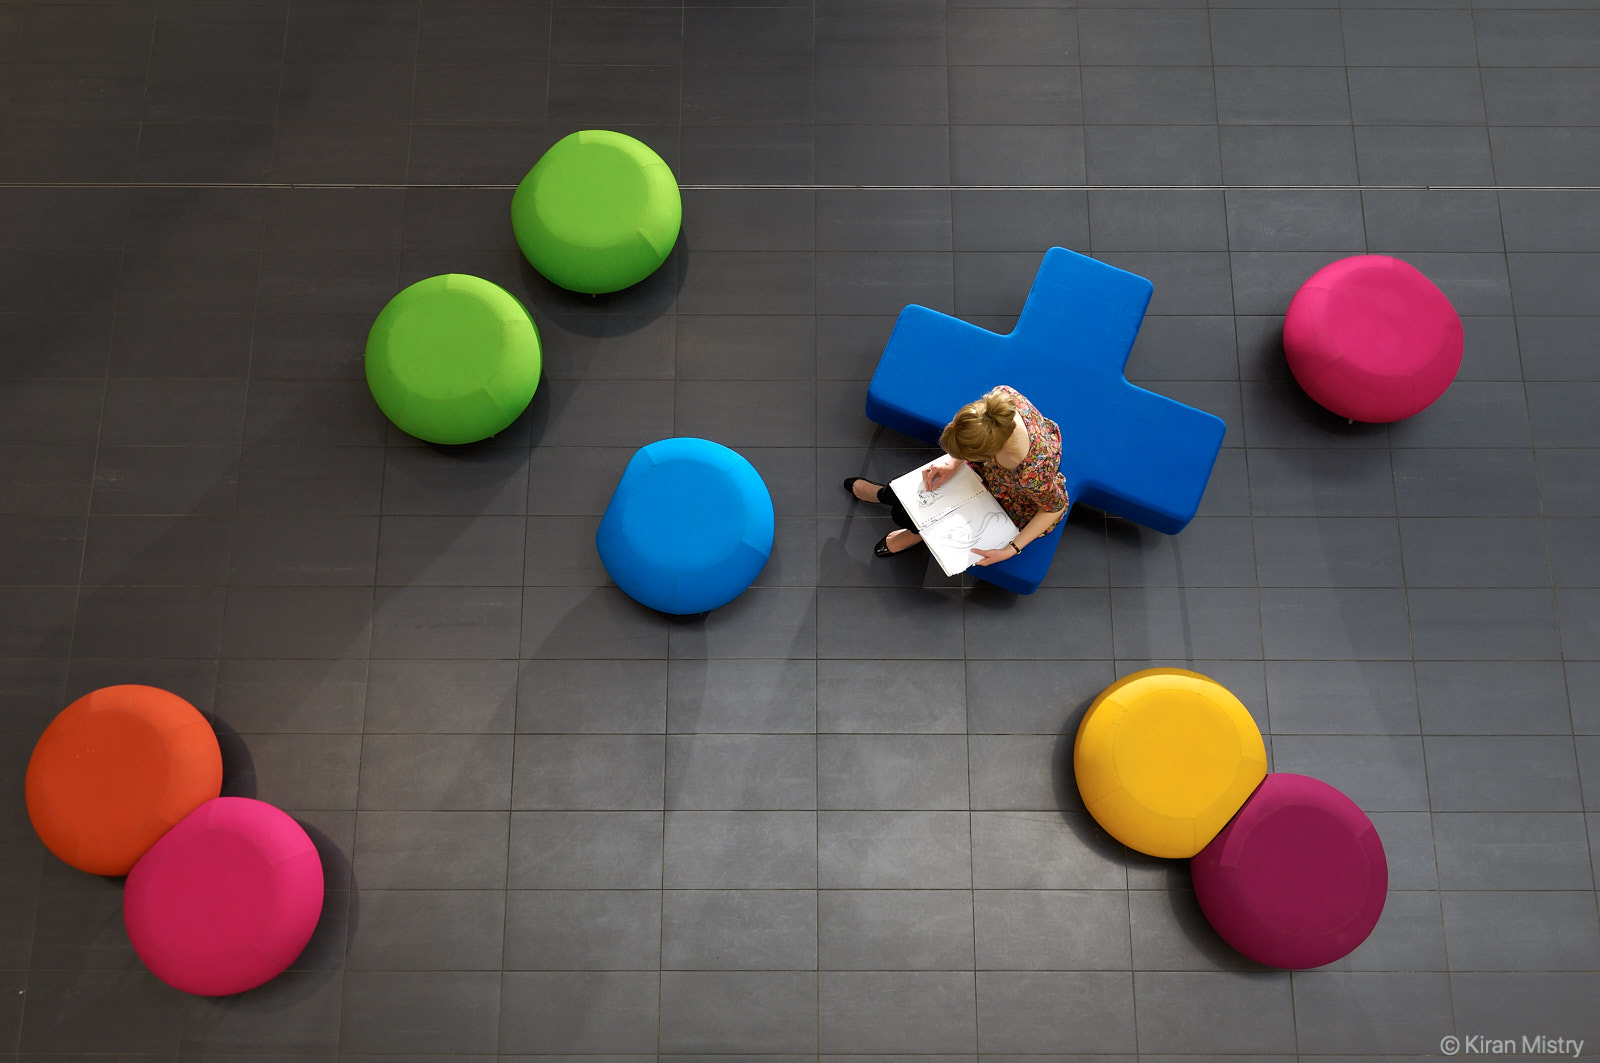 overhead view of college girl sat on colourful chairs sketching a portrait